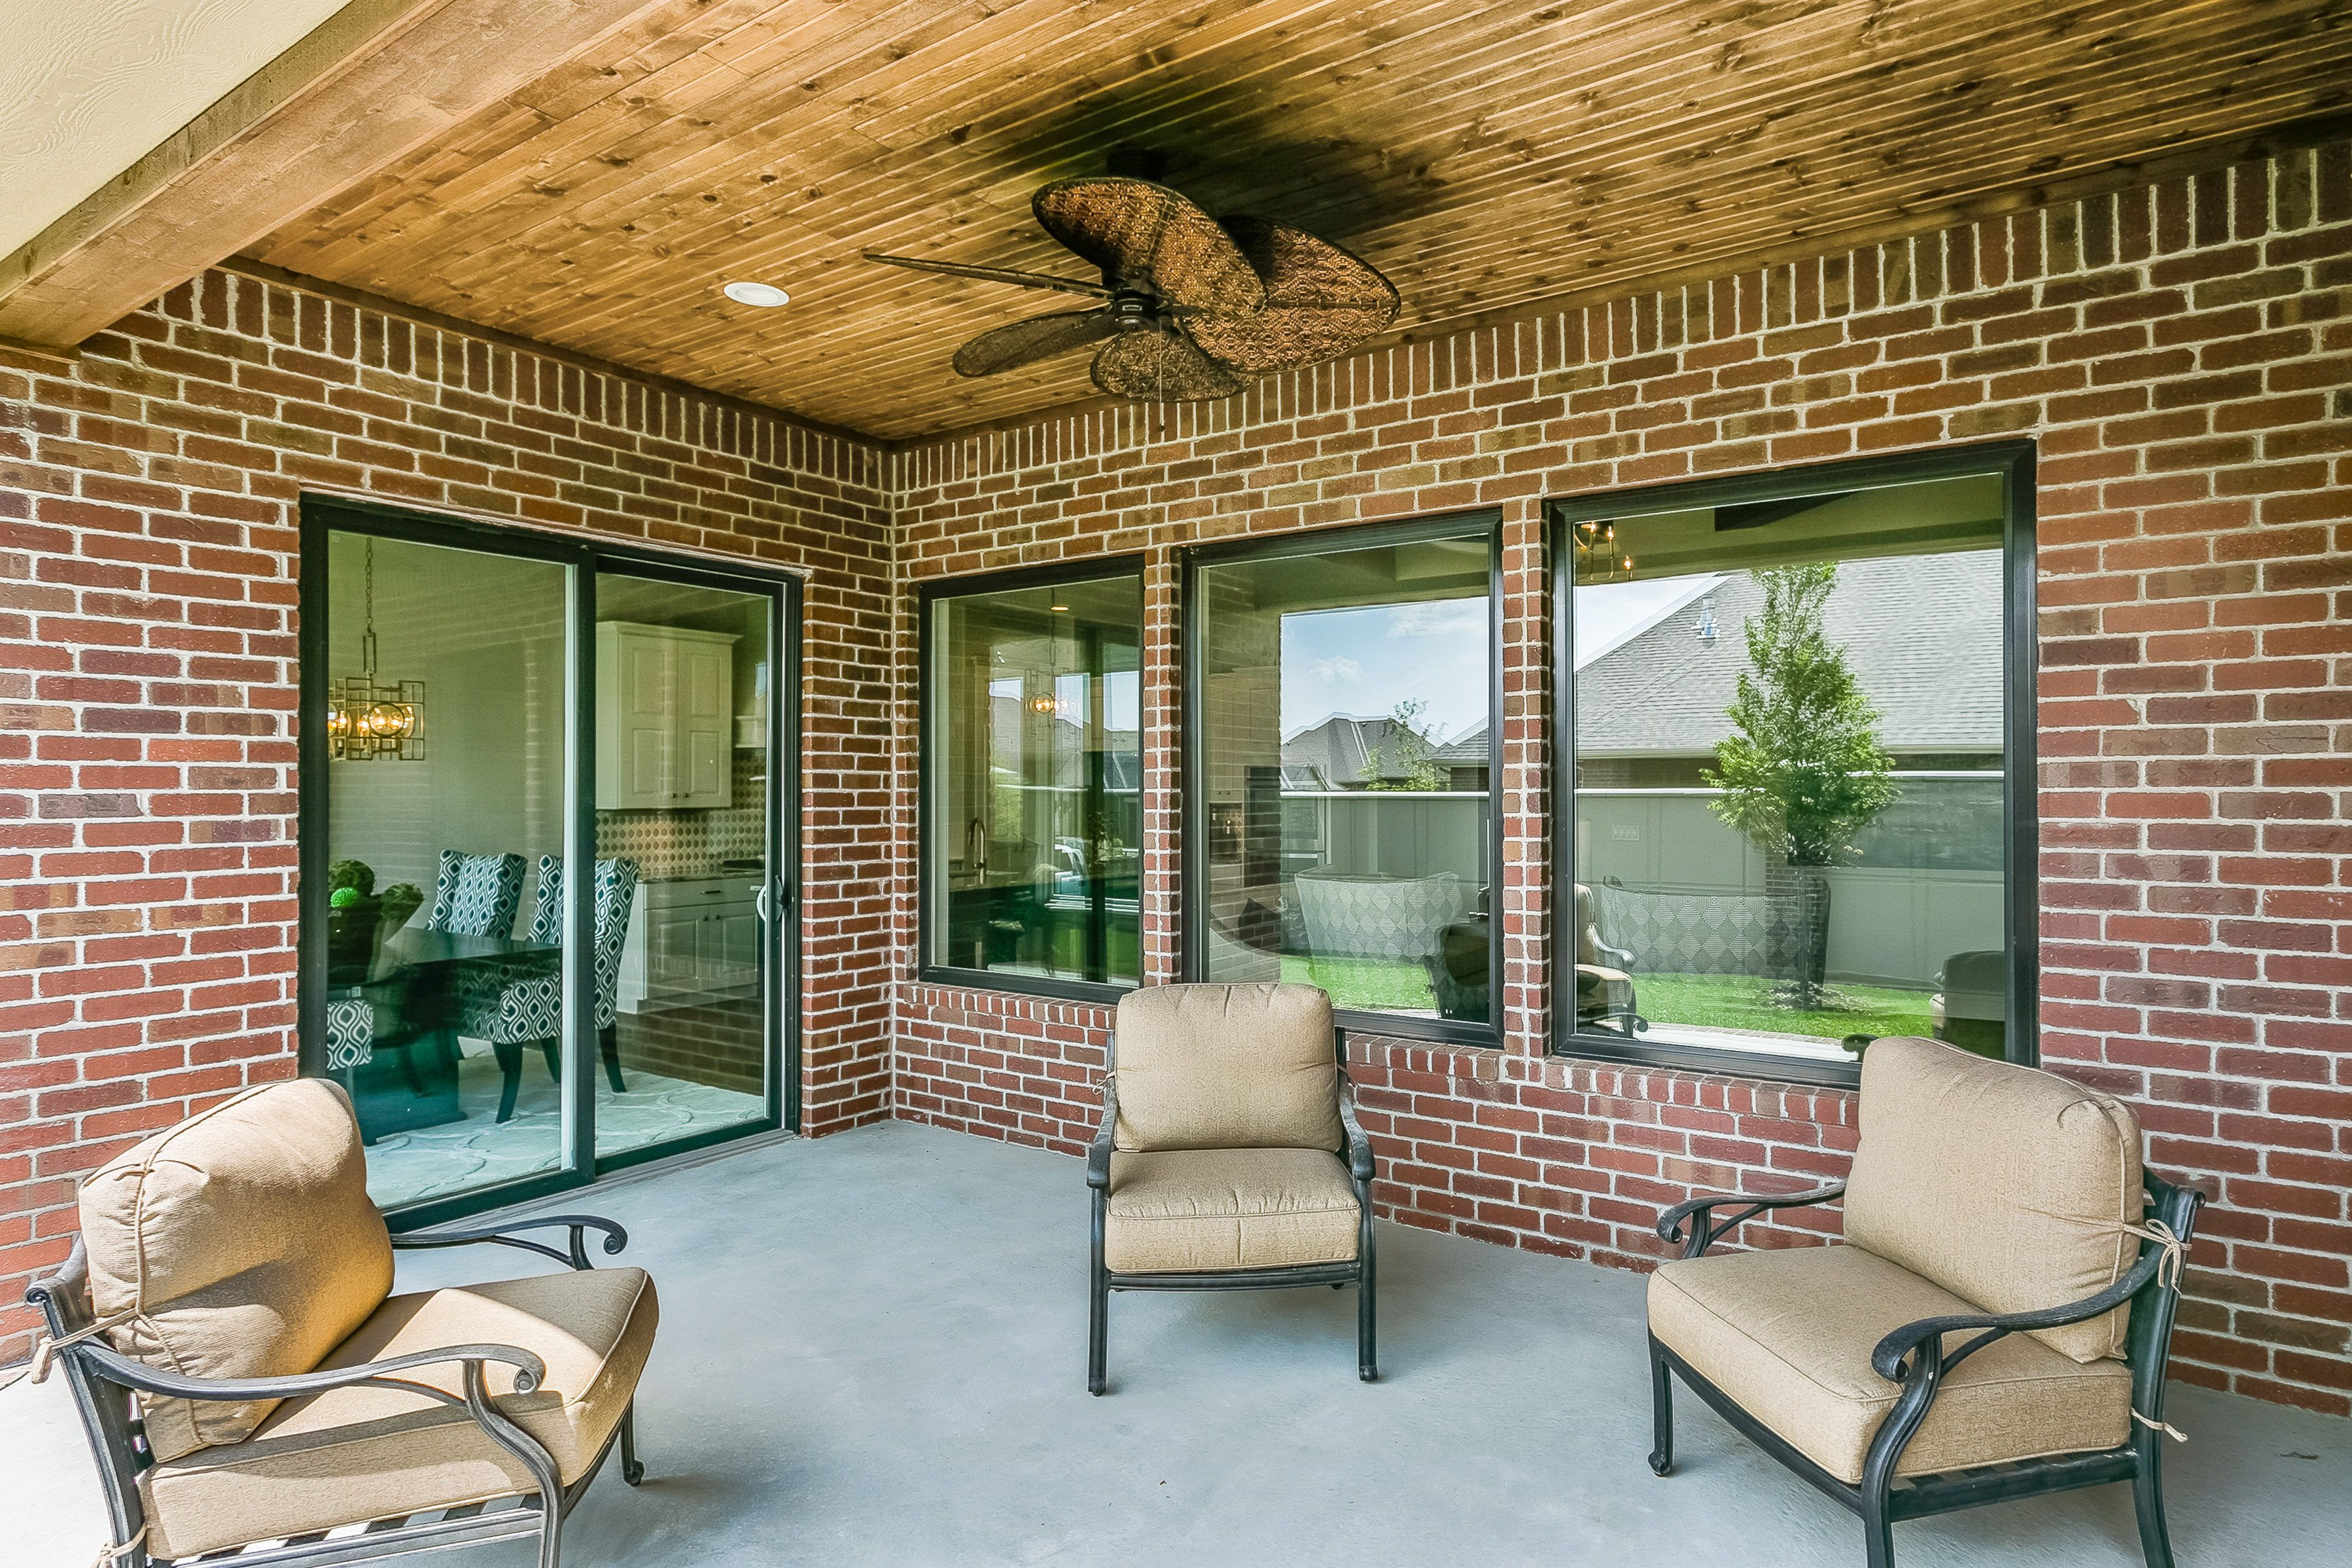 Riverside Plan: Covered Outdoor Living Area with a large ... on Riverside Outdoor Living id=27094